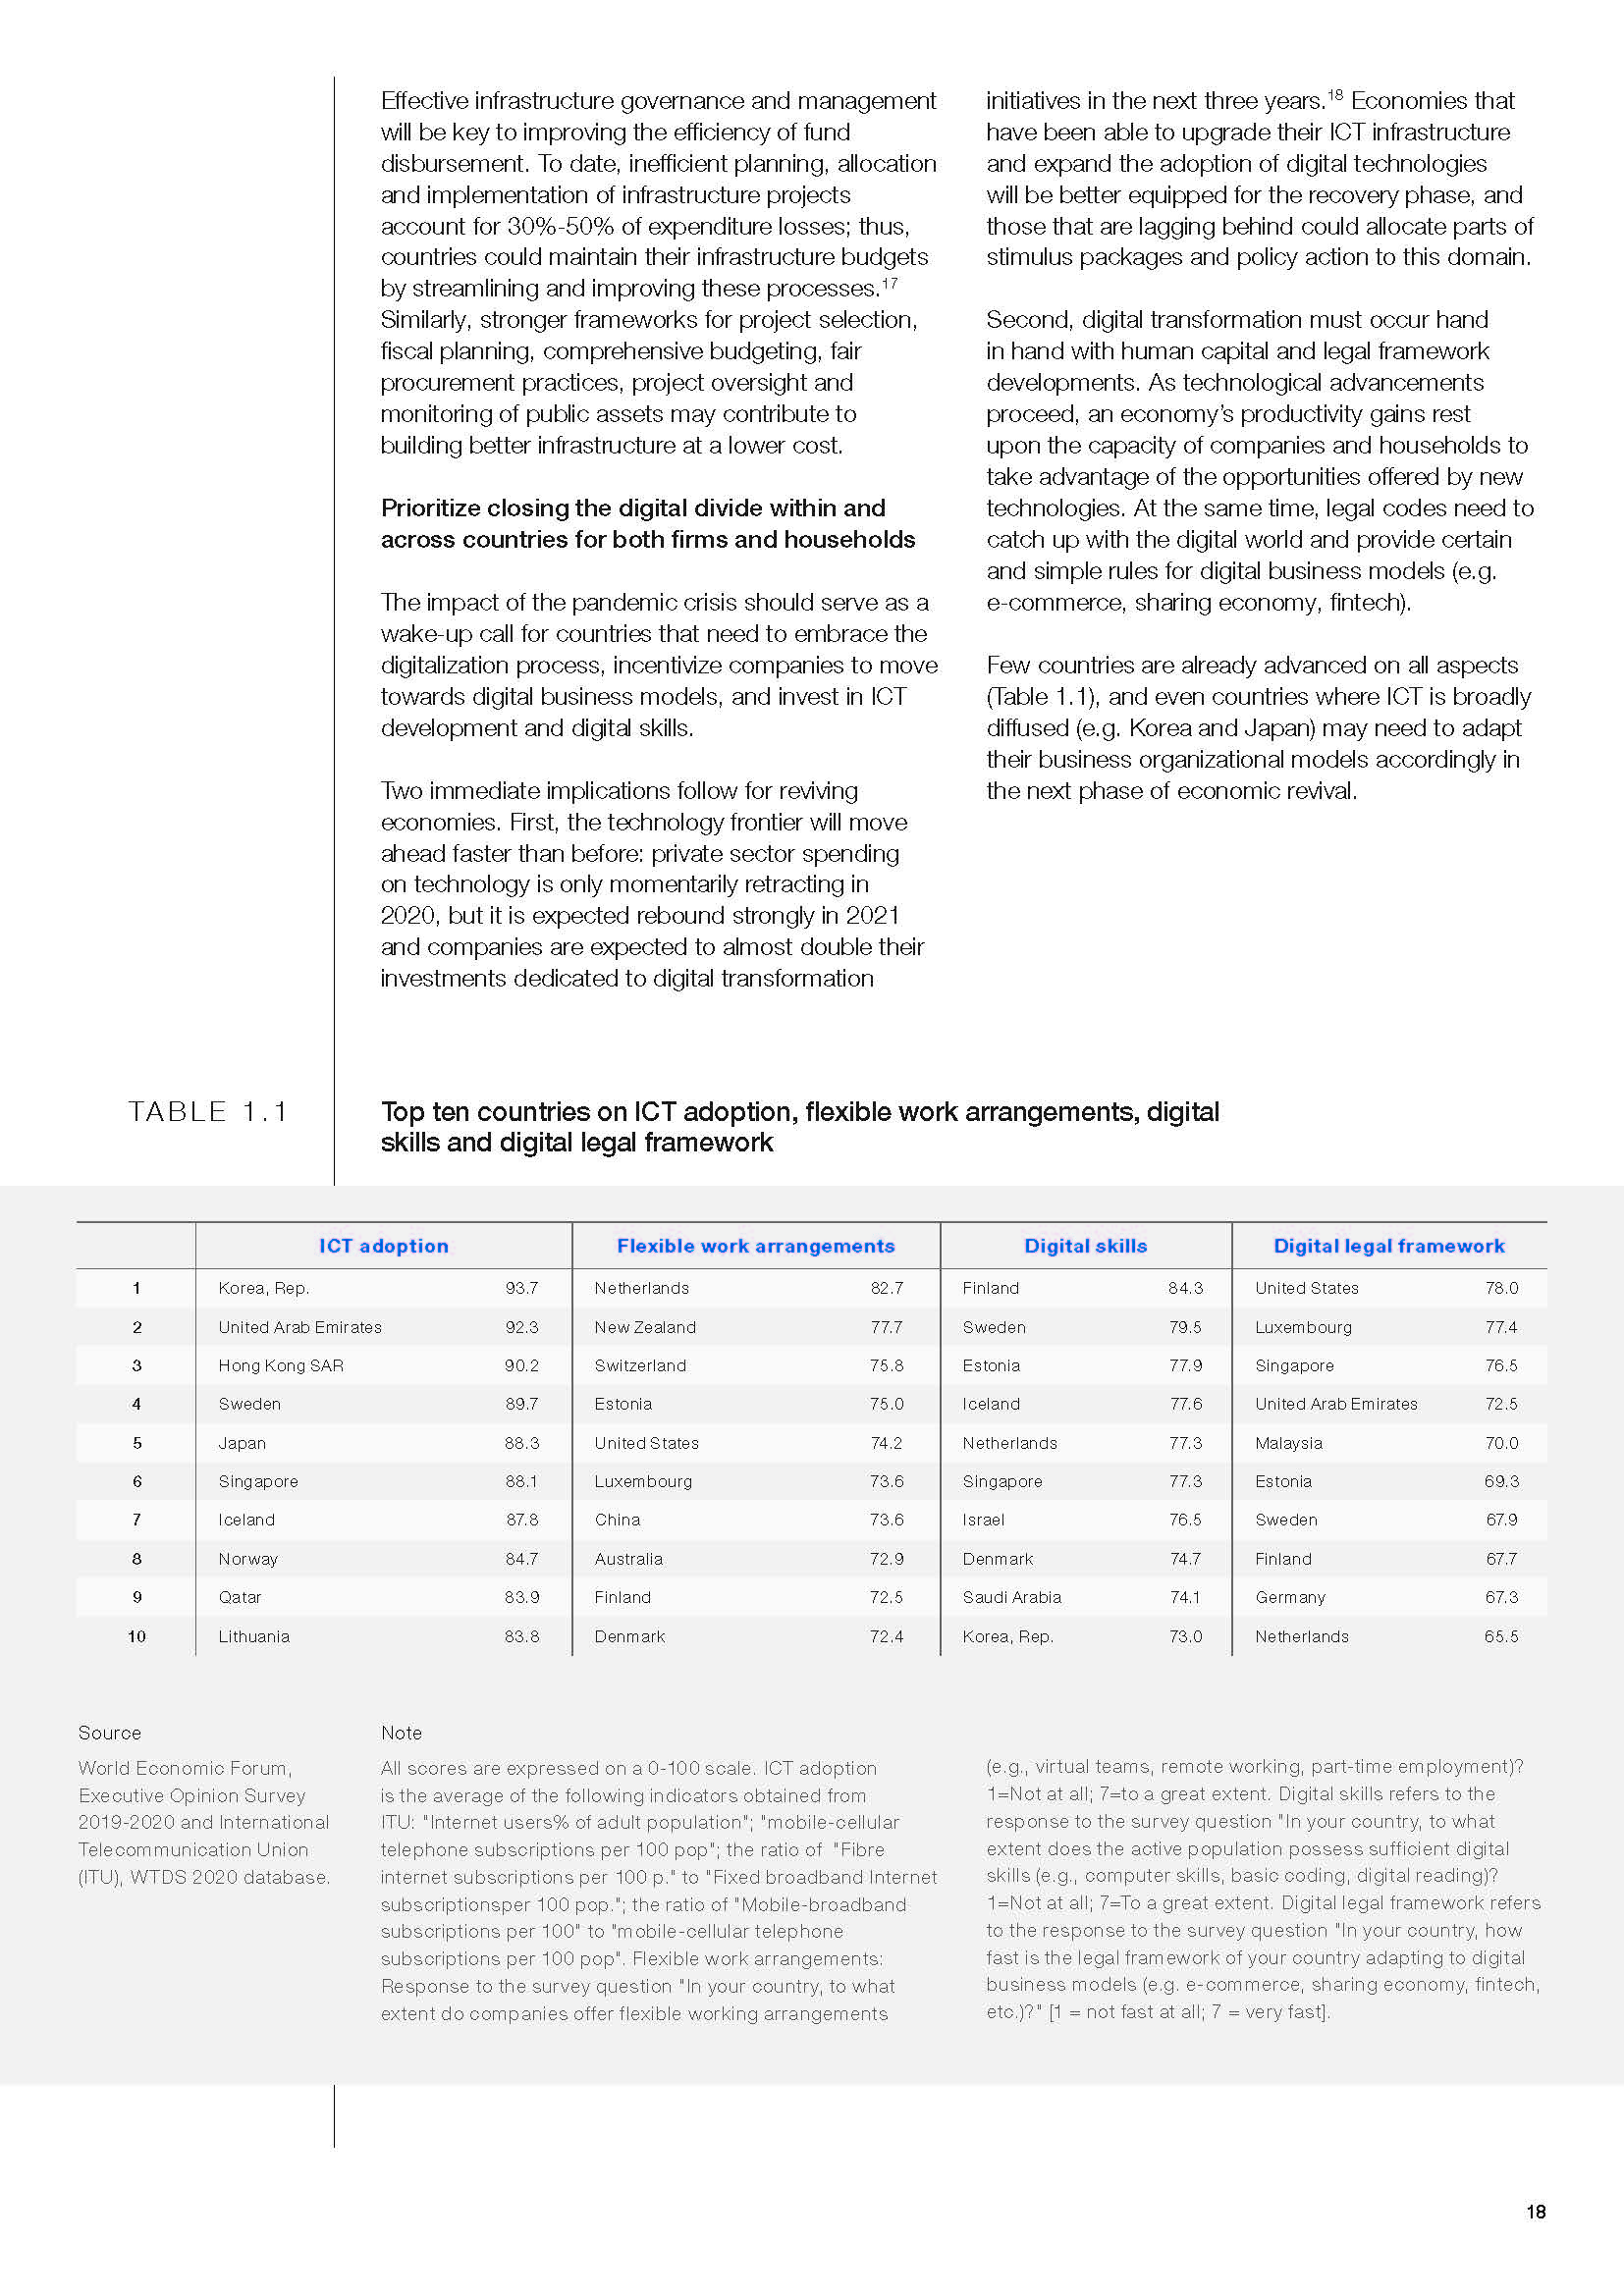 Global Competitiveness Report Special Edition 2020:How Countries are Performing on the Road to Recovery - World Economic Forum_页面_18.jpg